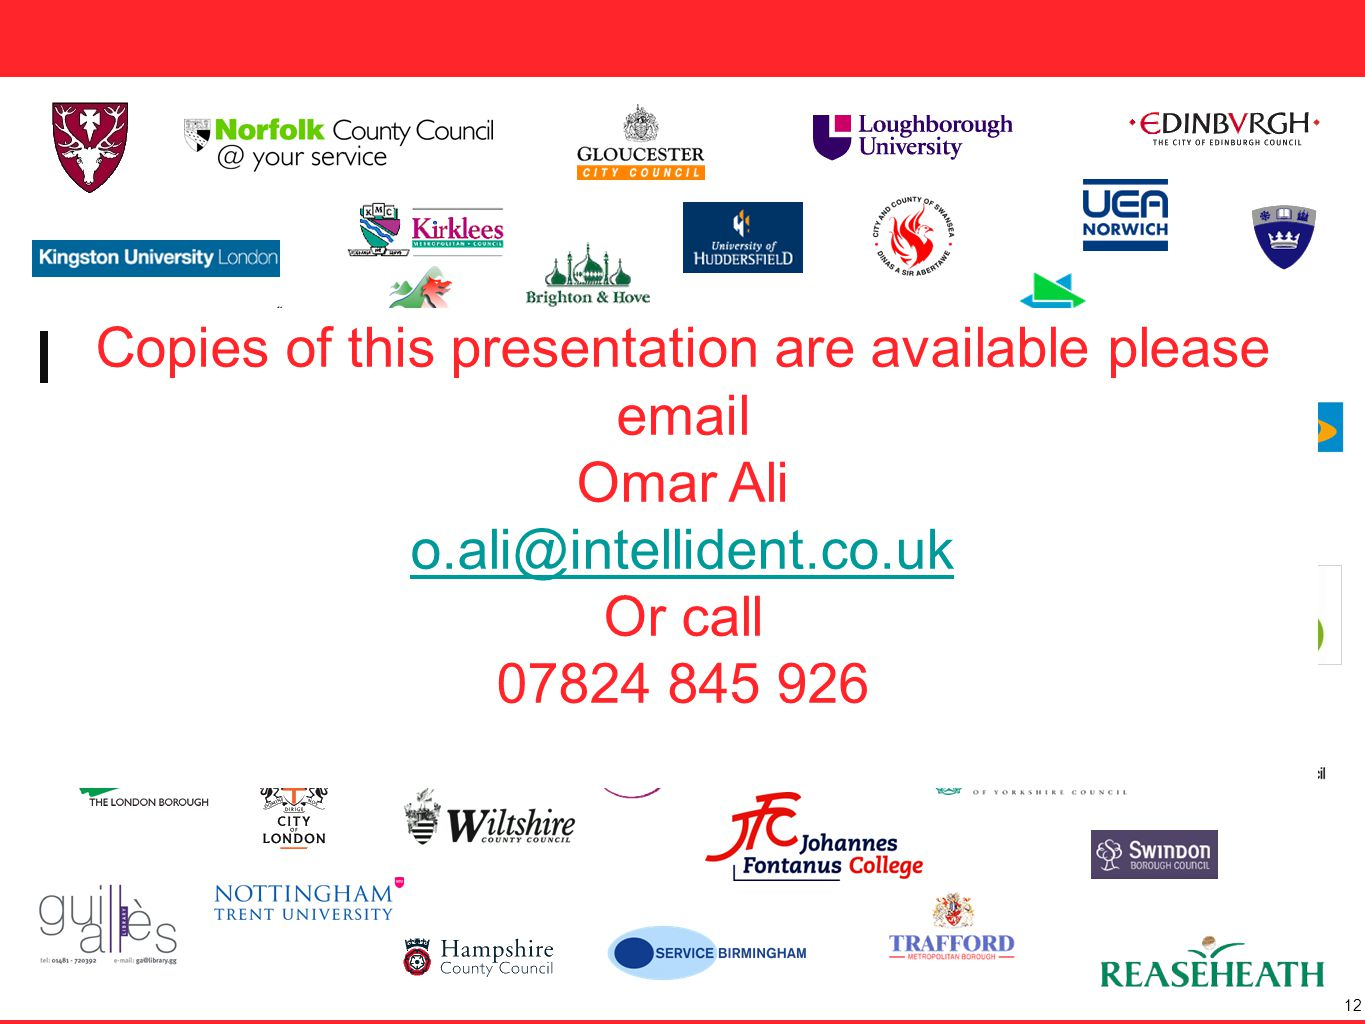 12 450 Copies of this presentation are available please email Omar Ali o.ali@intellident.co.uk Or call 07824 845 926